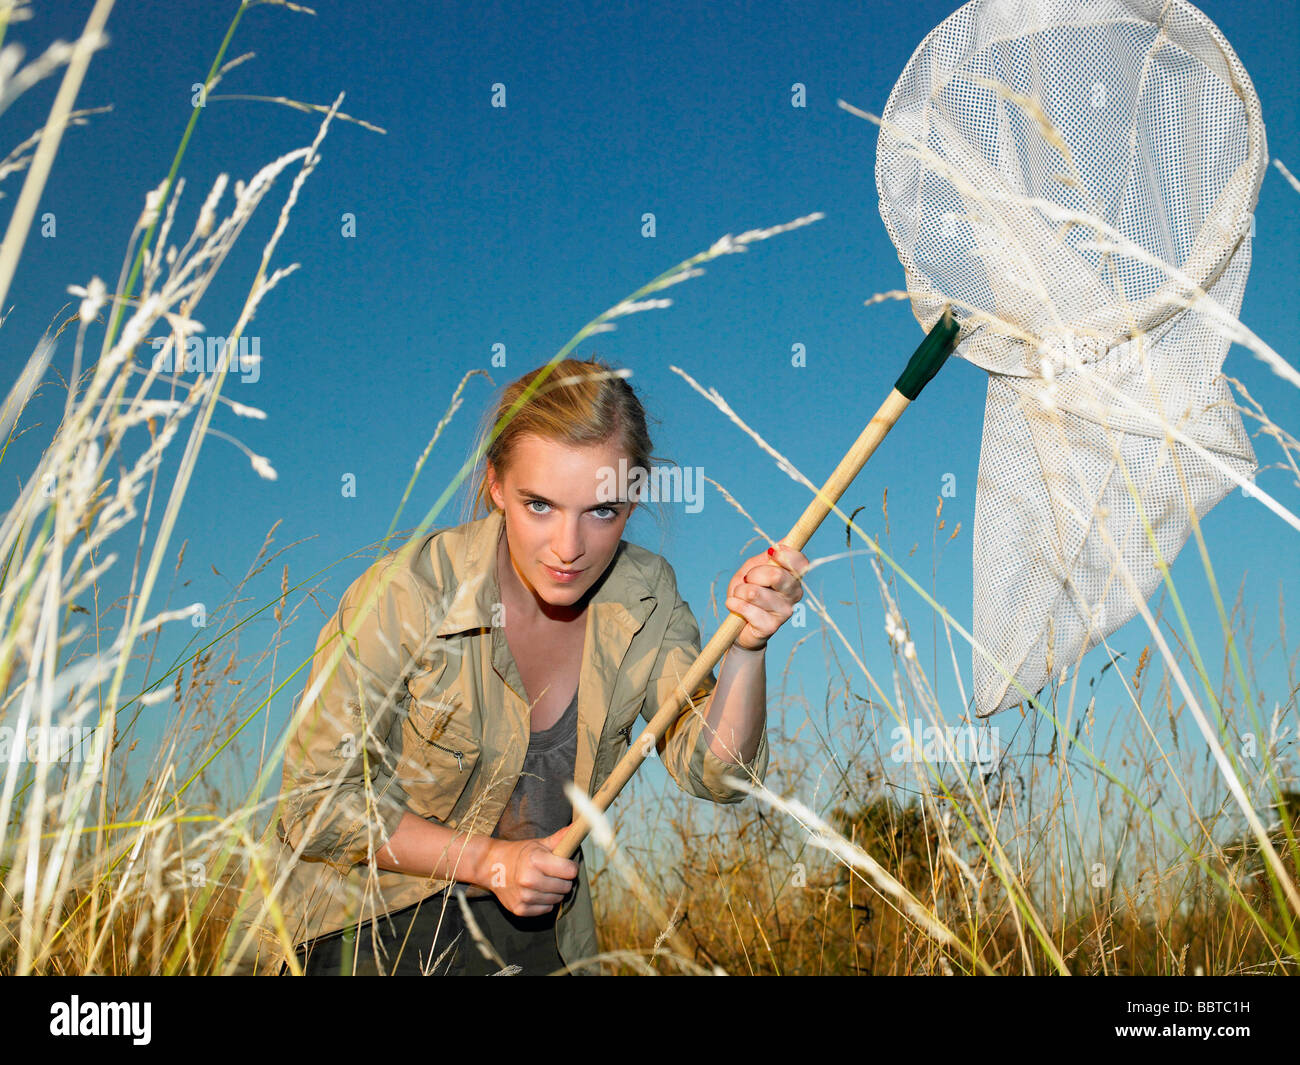 Femme avec butterfly net Photo Stock